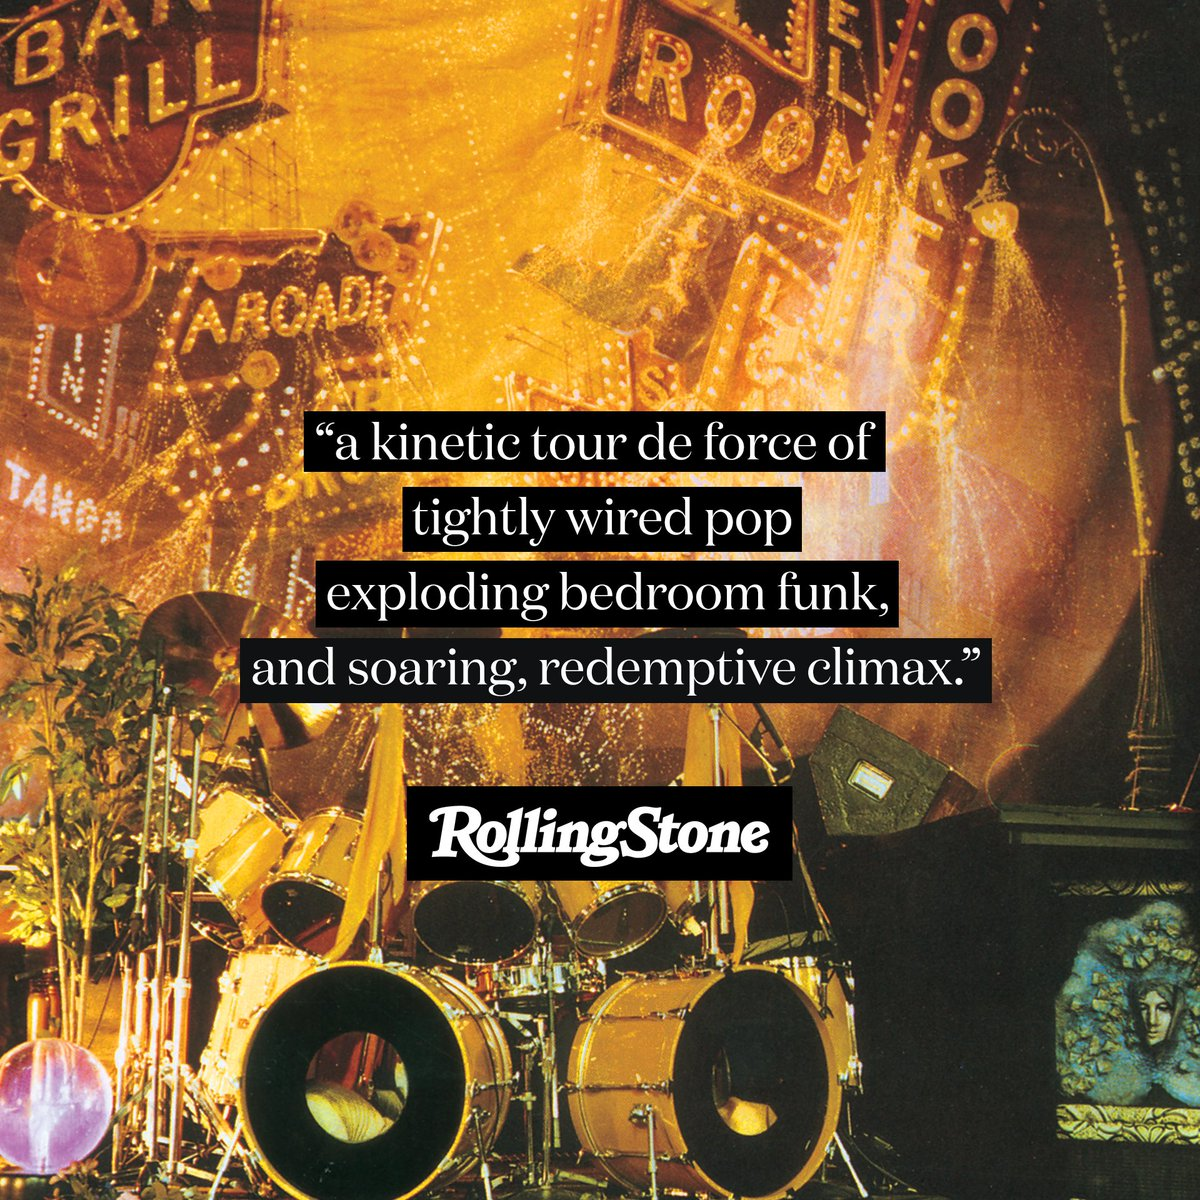 """Rolling Stone also highlighted #PrinceSOTT Super Deluxe Edition among the Best Reissues of 2020, hailing the album as """"a kinetic tour de force of tightly wired pop, exploding bedroom funk, and soaring, redemptive climax."""""""